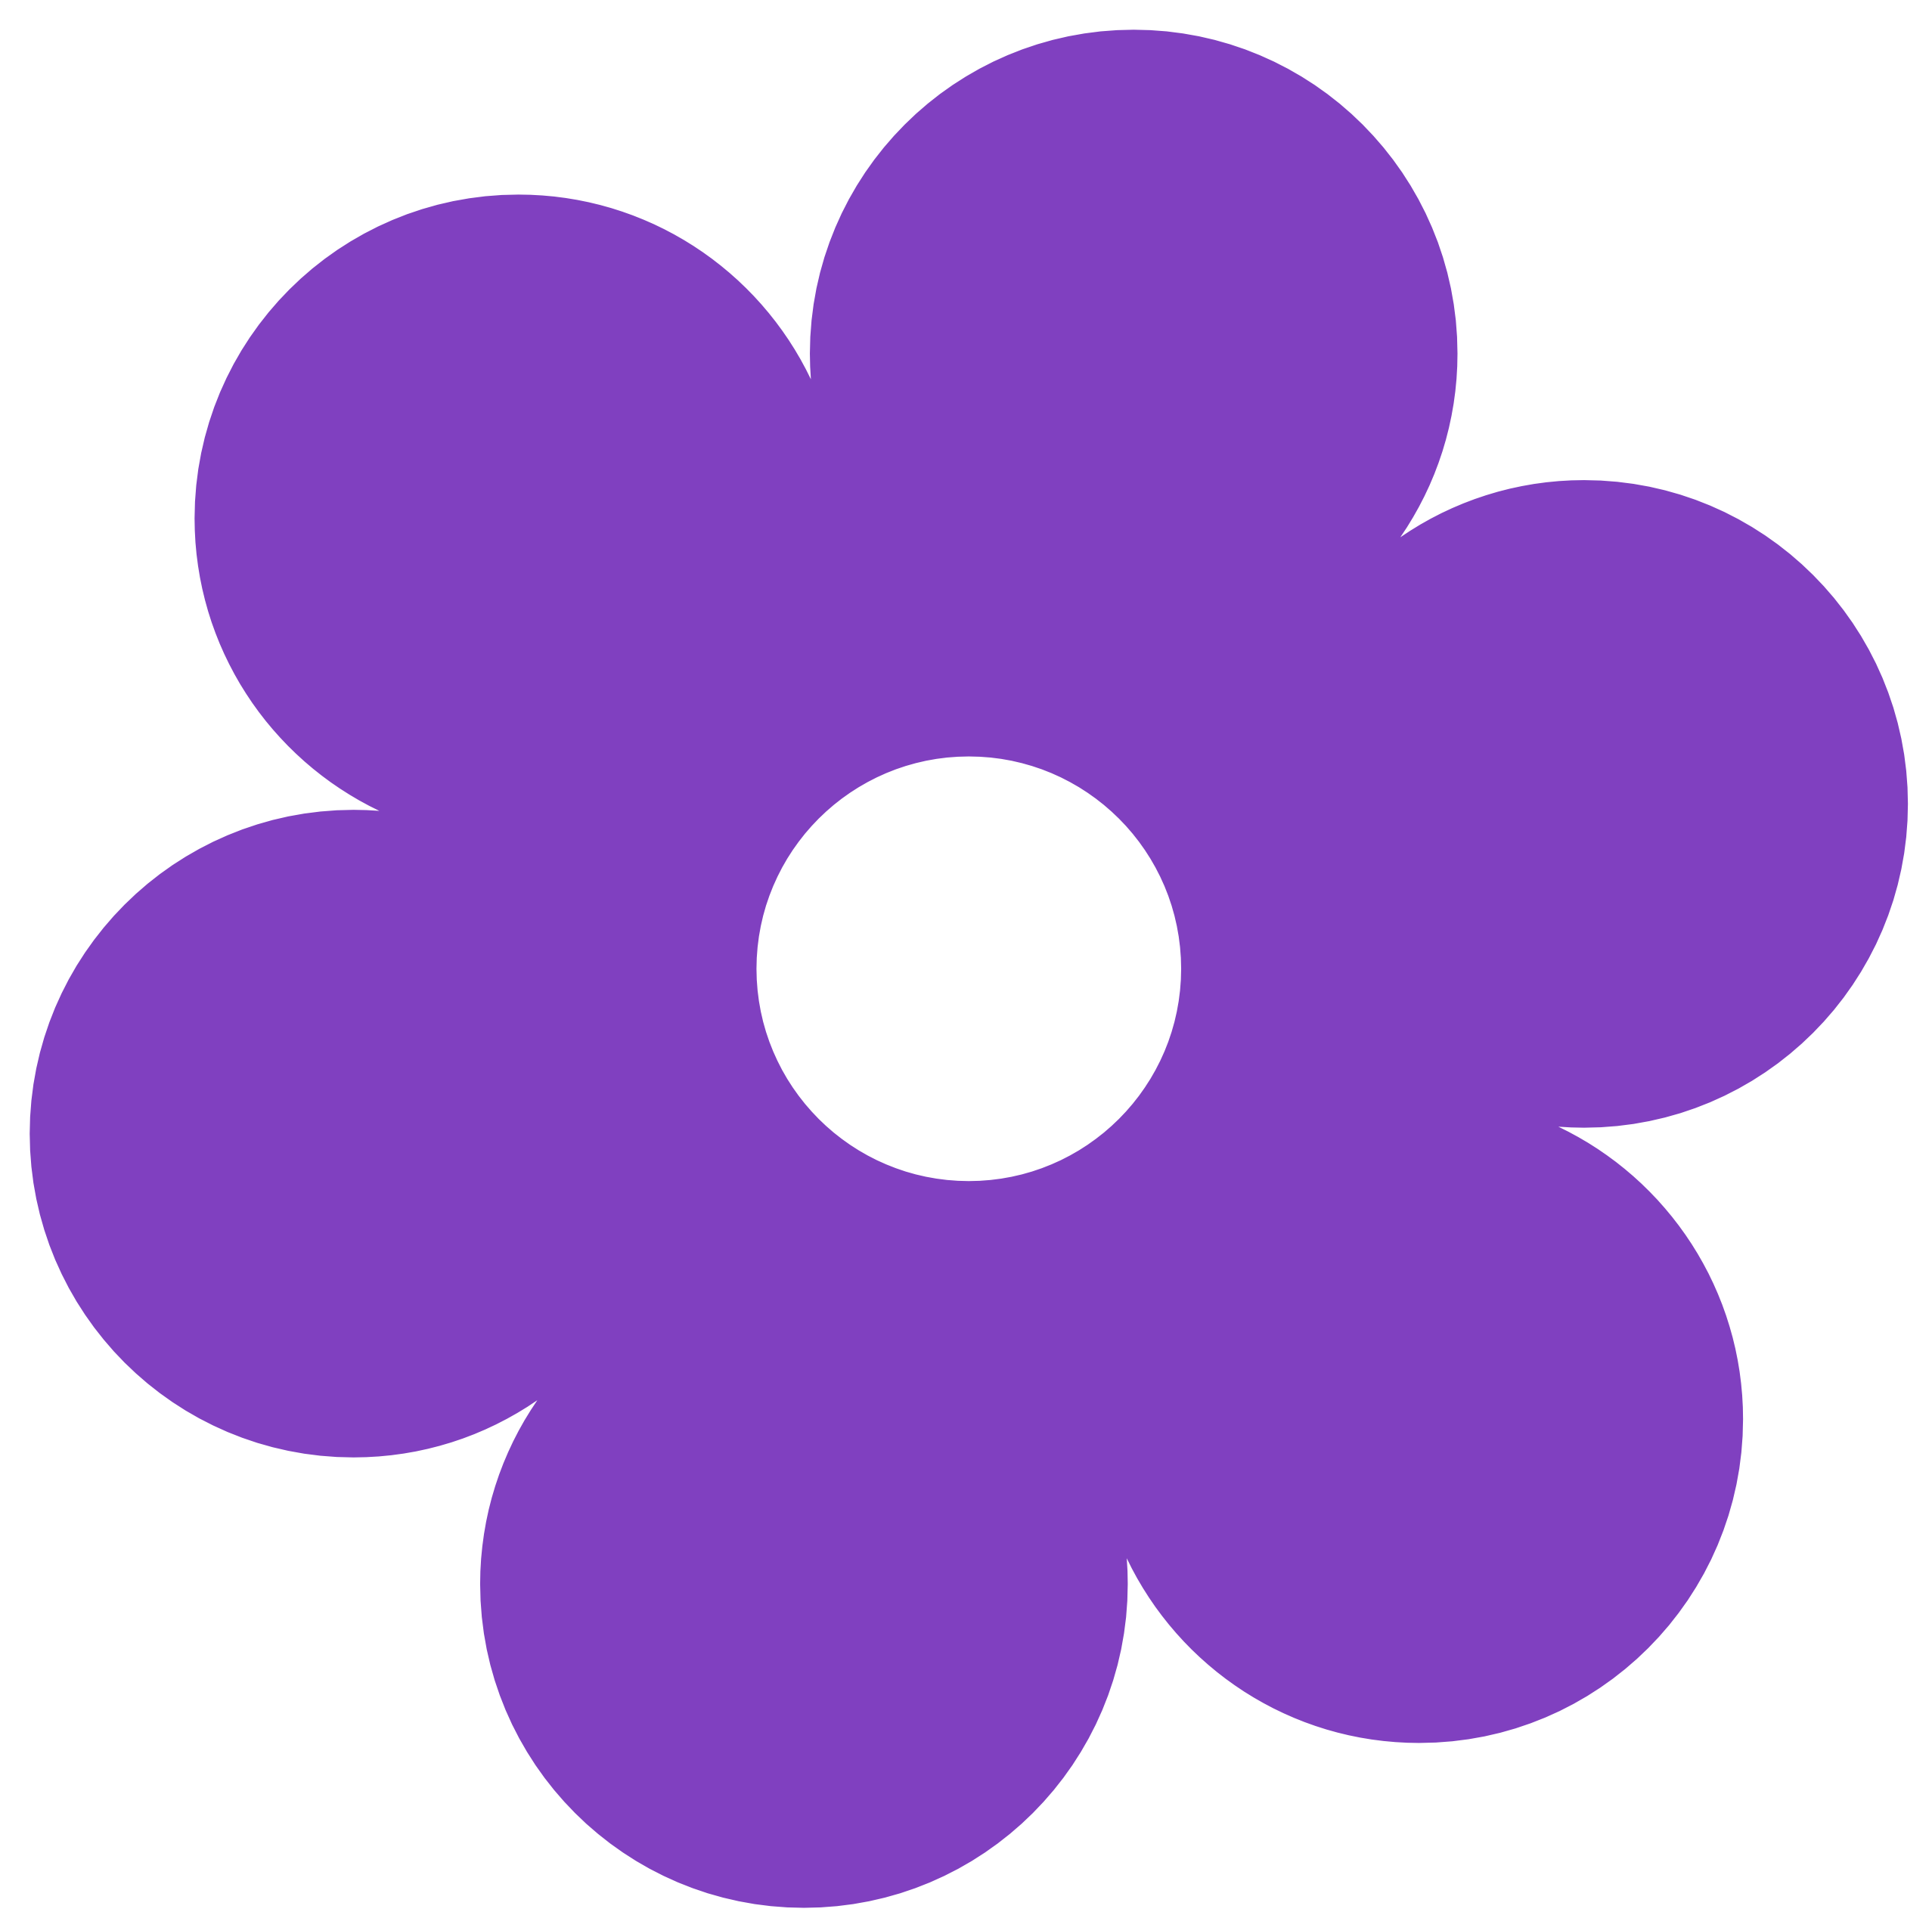 Flower clipart #5, Download drawings